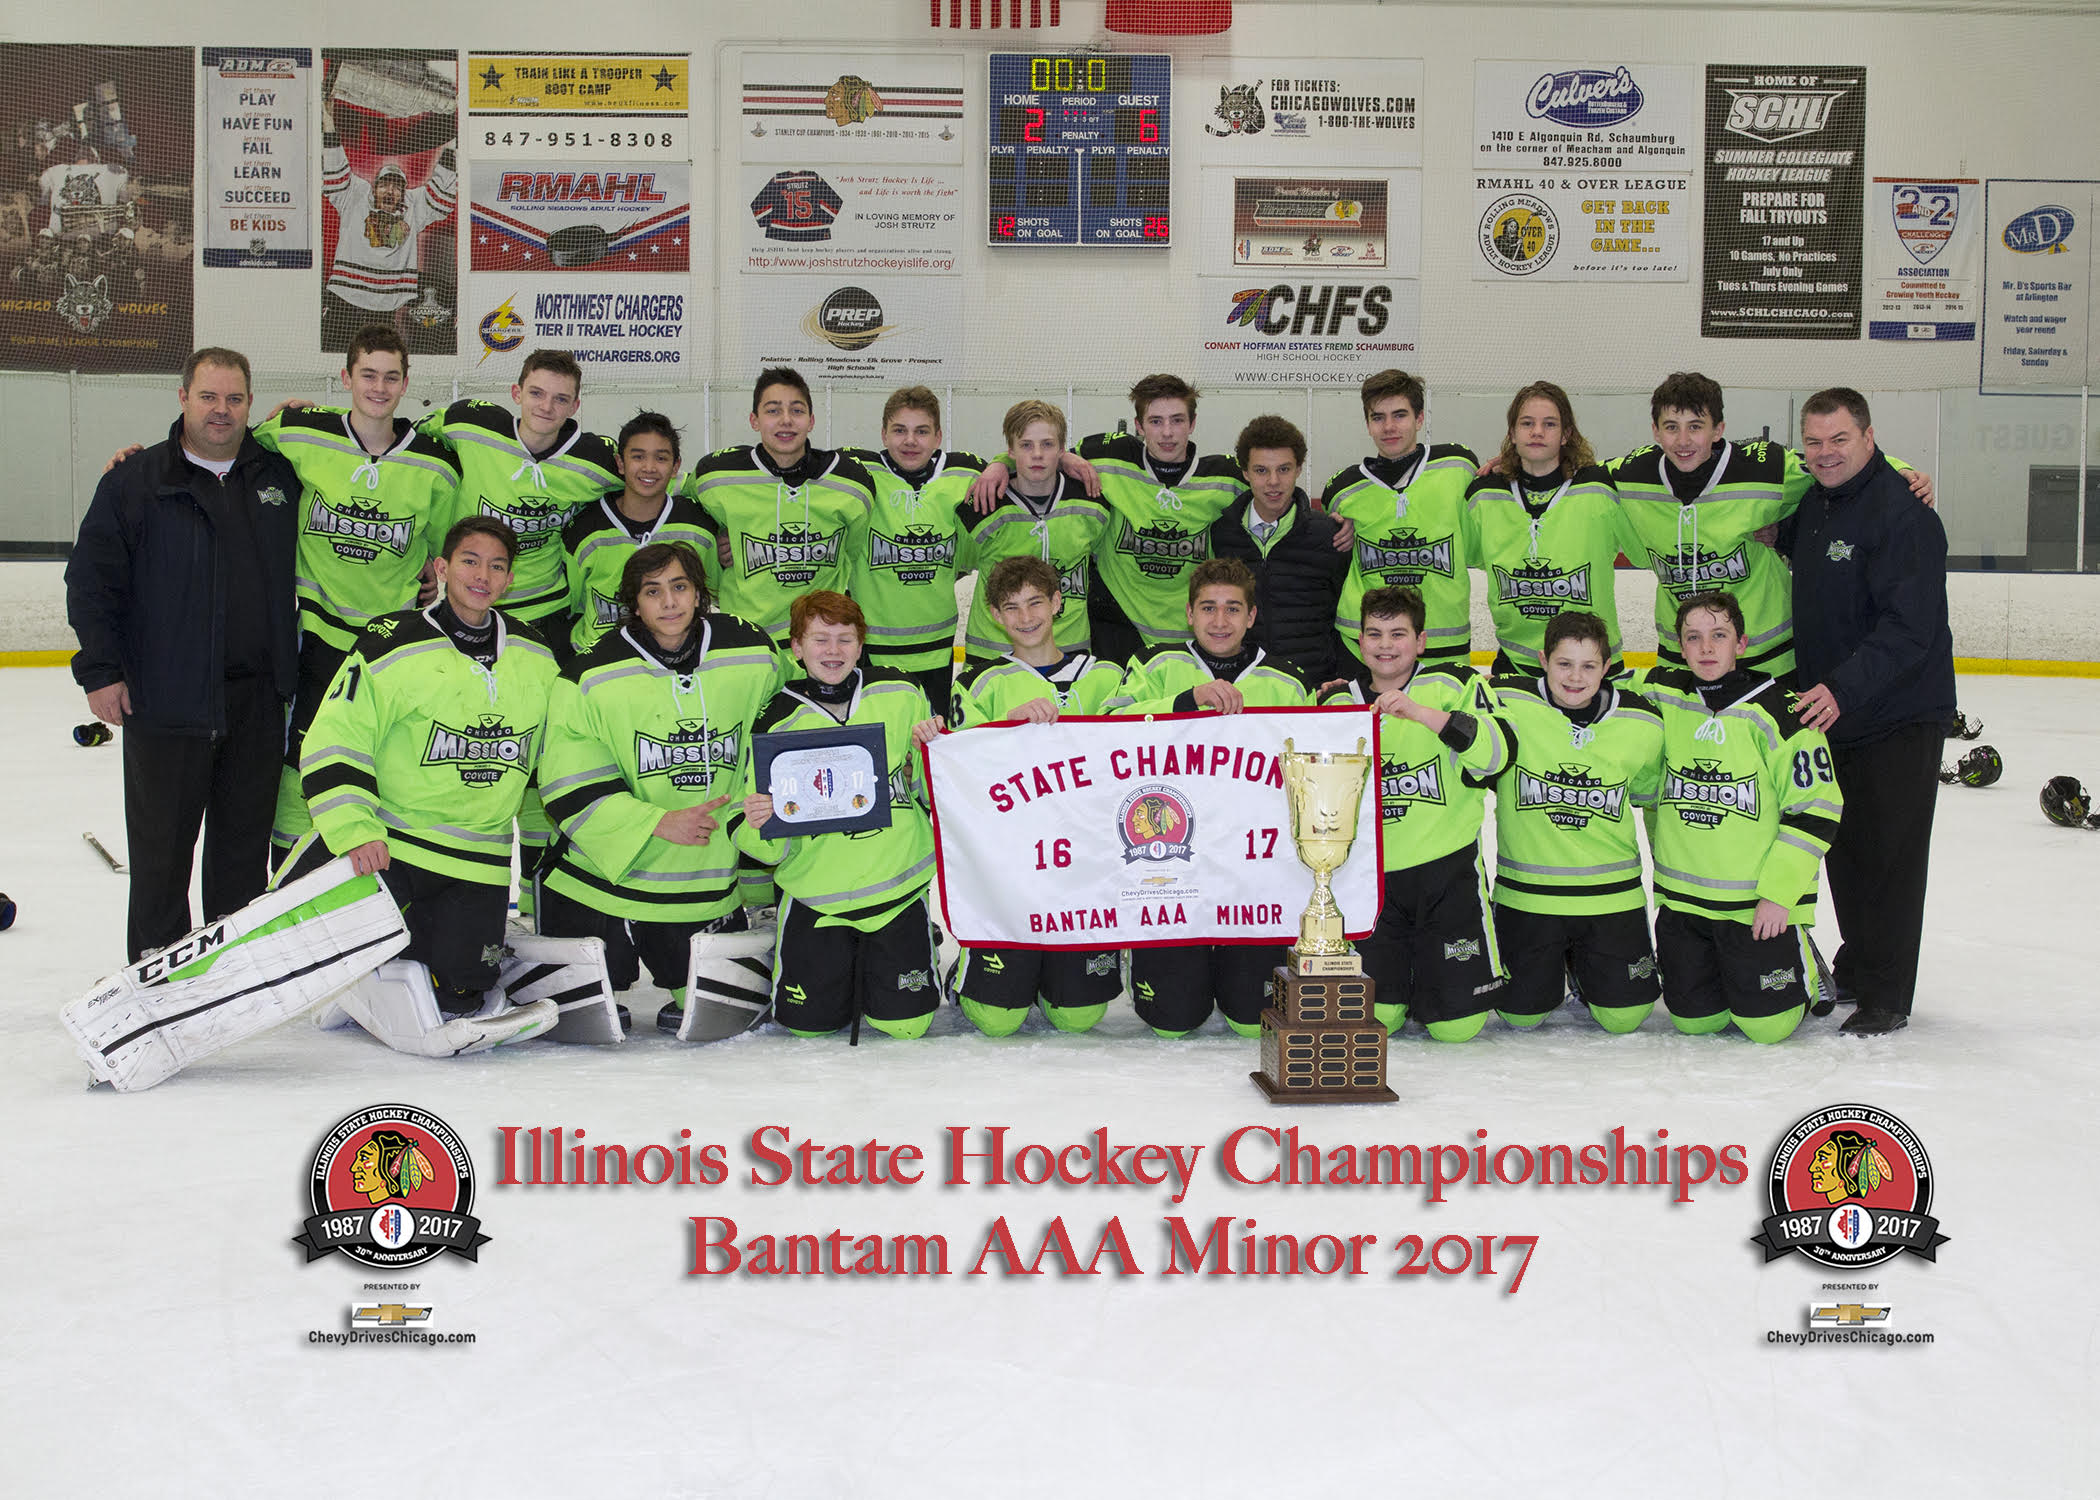 Mission 2003's State Champions